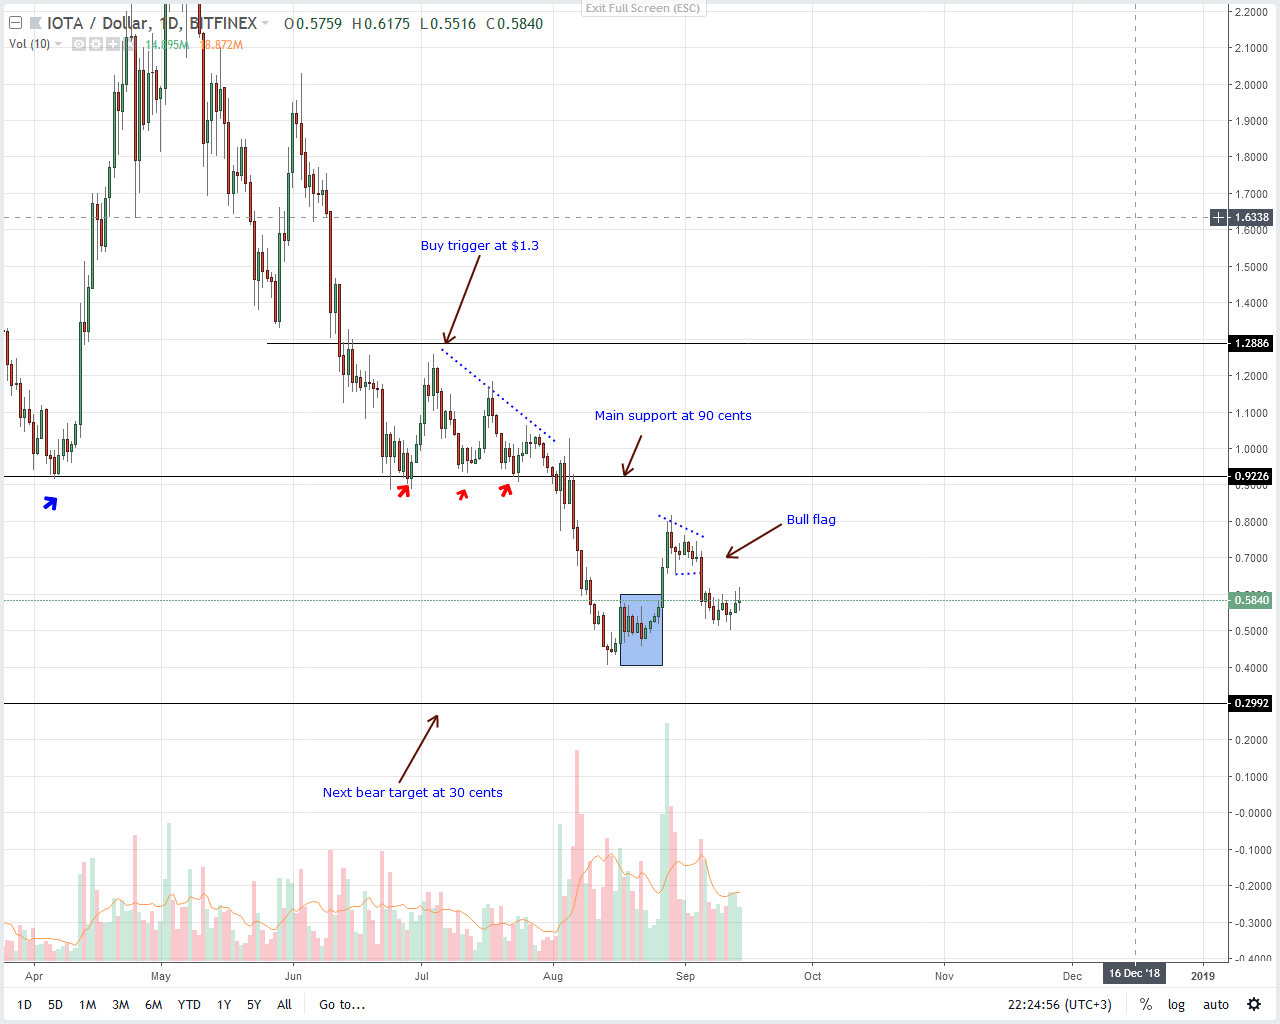 IOTA Price Analysis